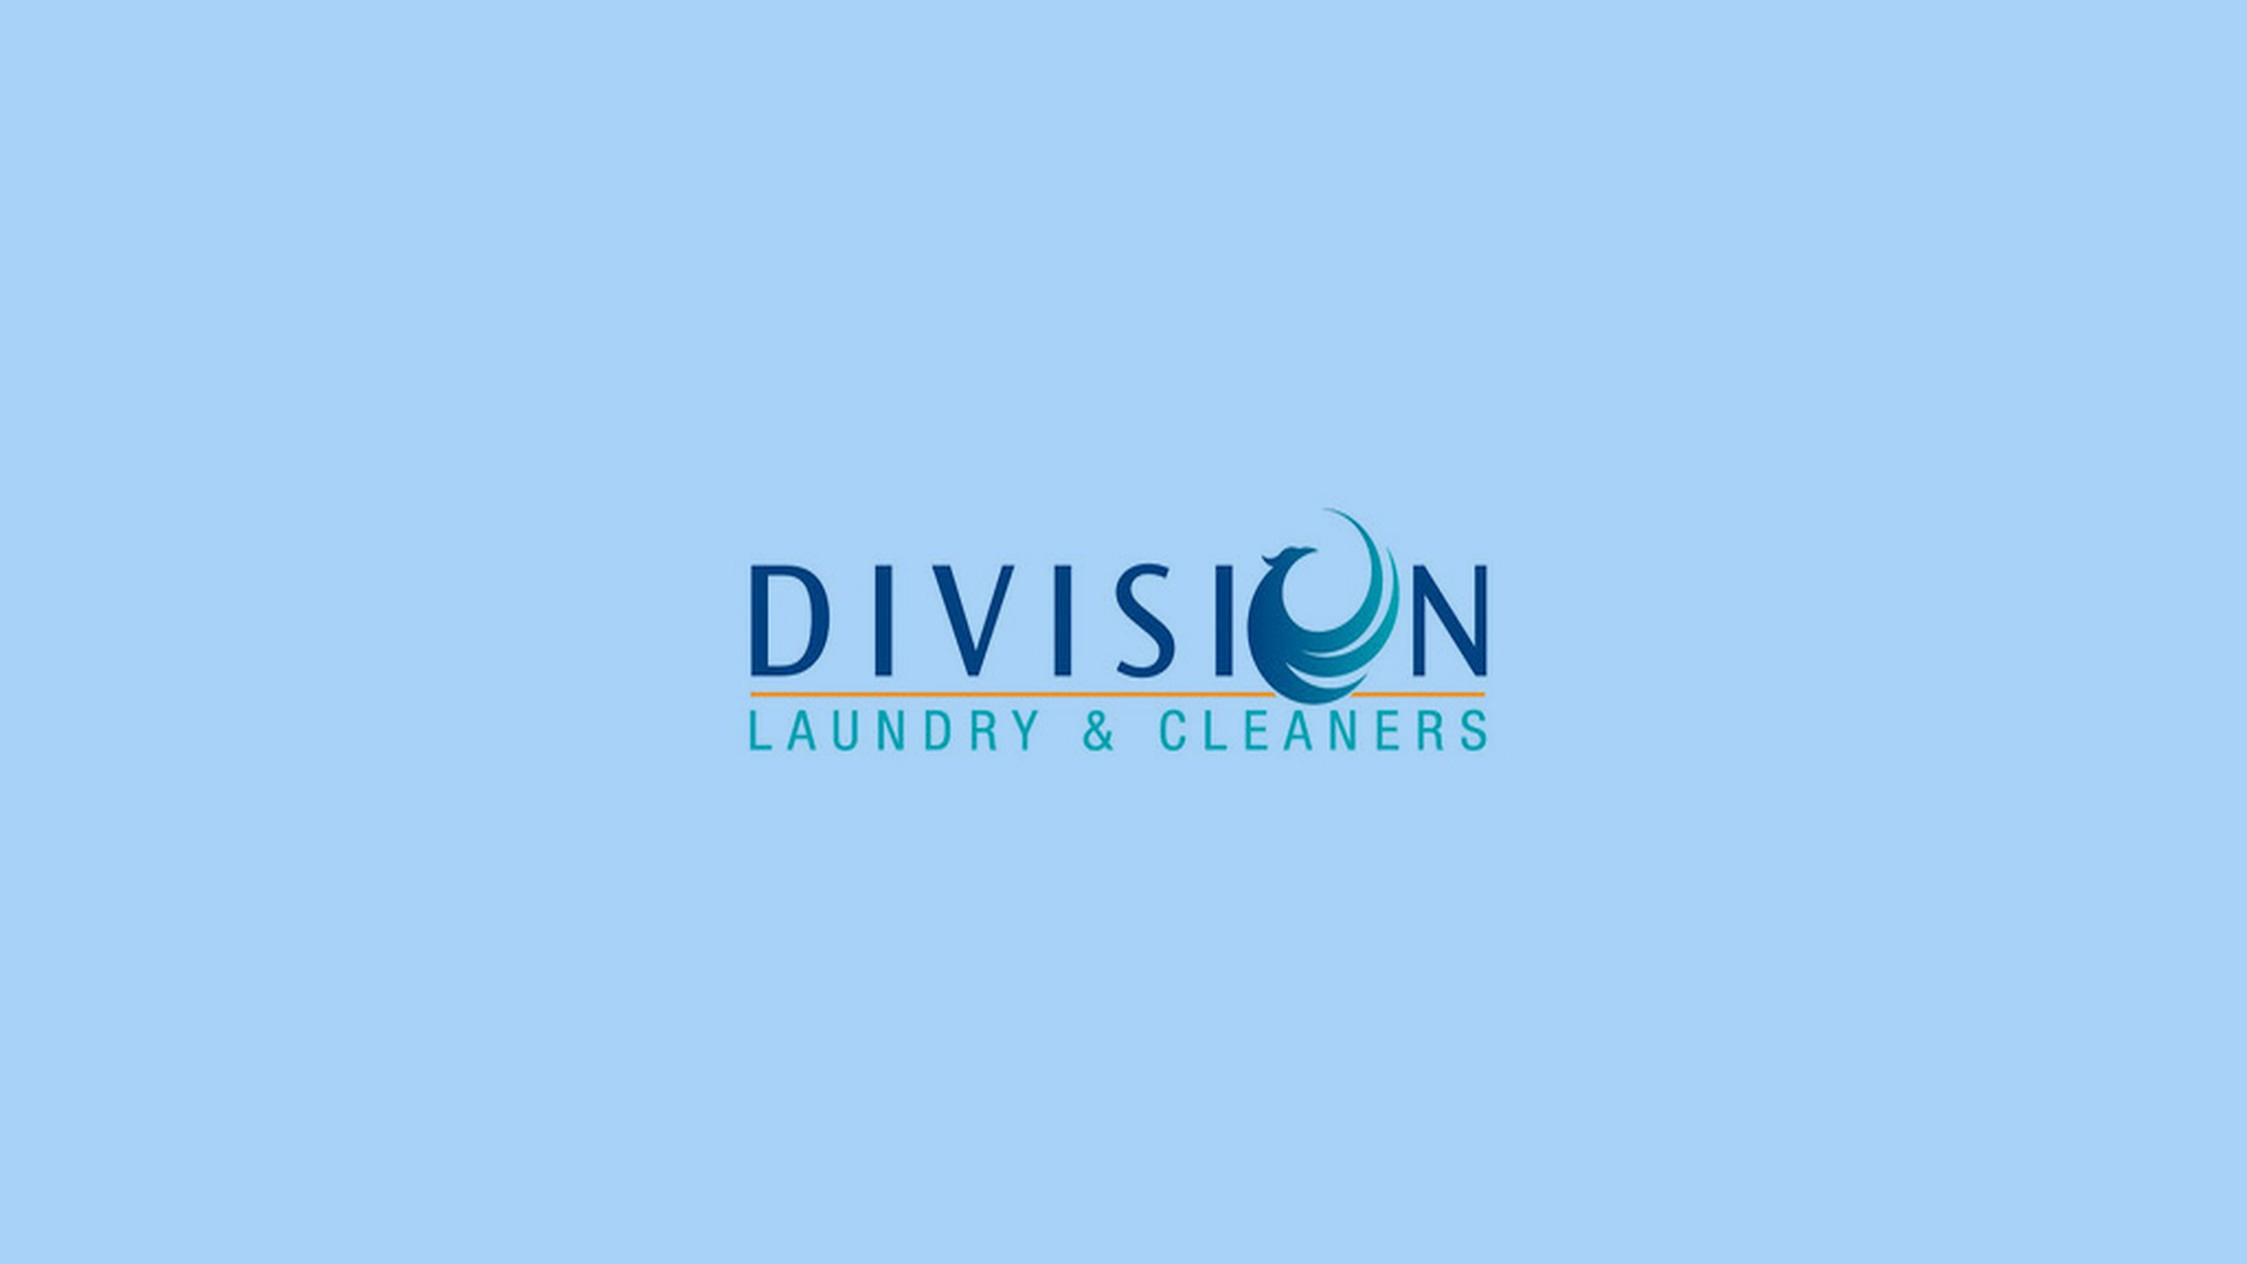 Division Laundry